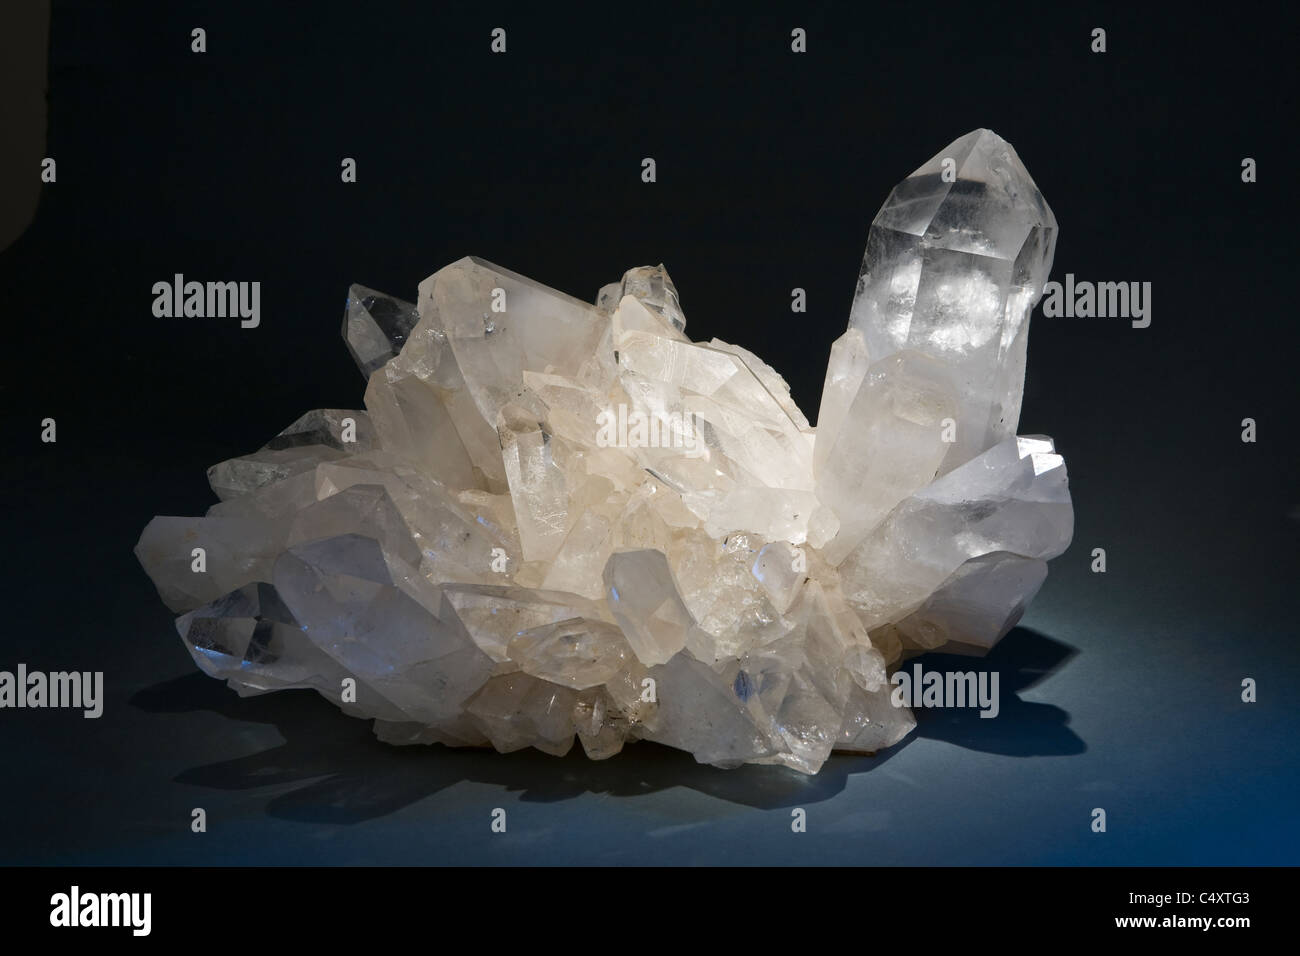 Rock crystal aggregate, Brazil - Stock Image